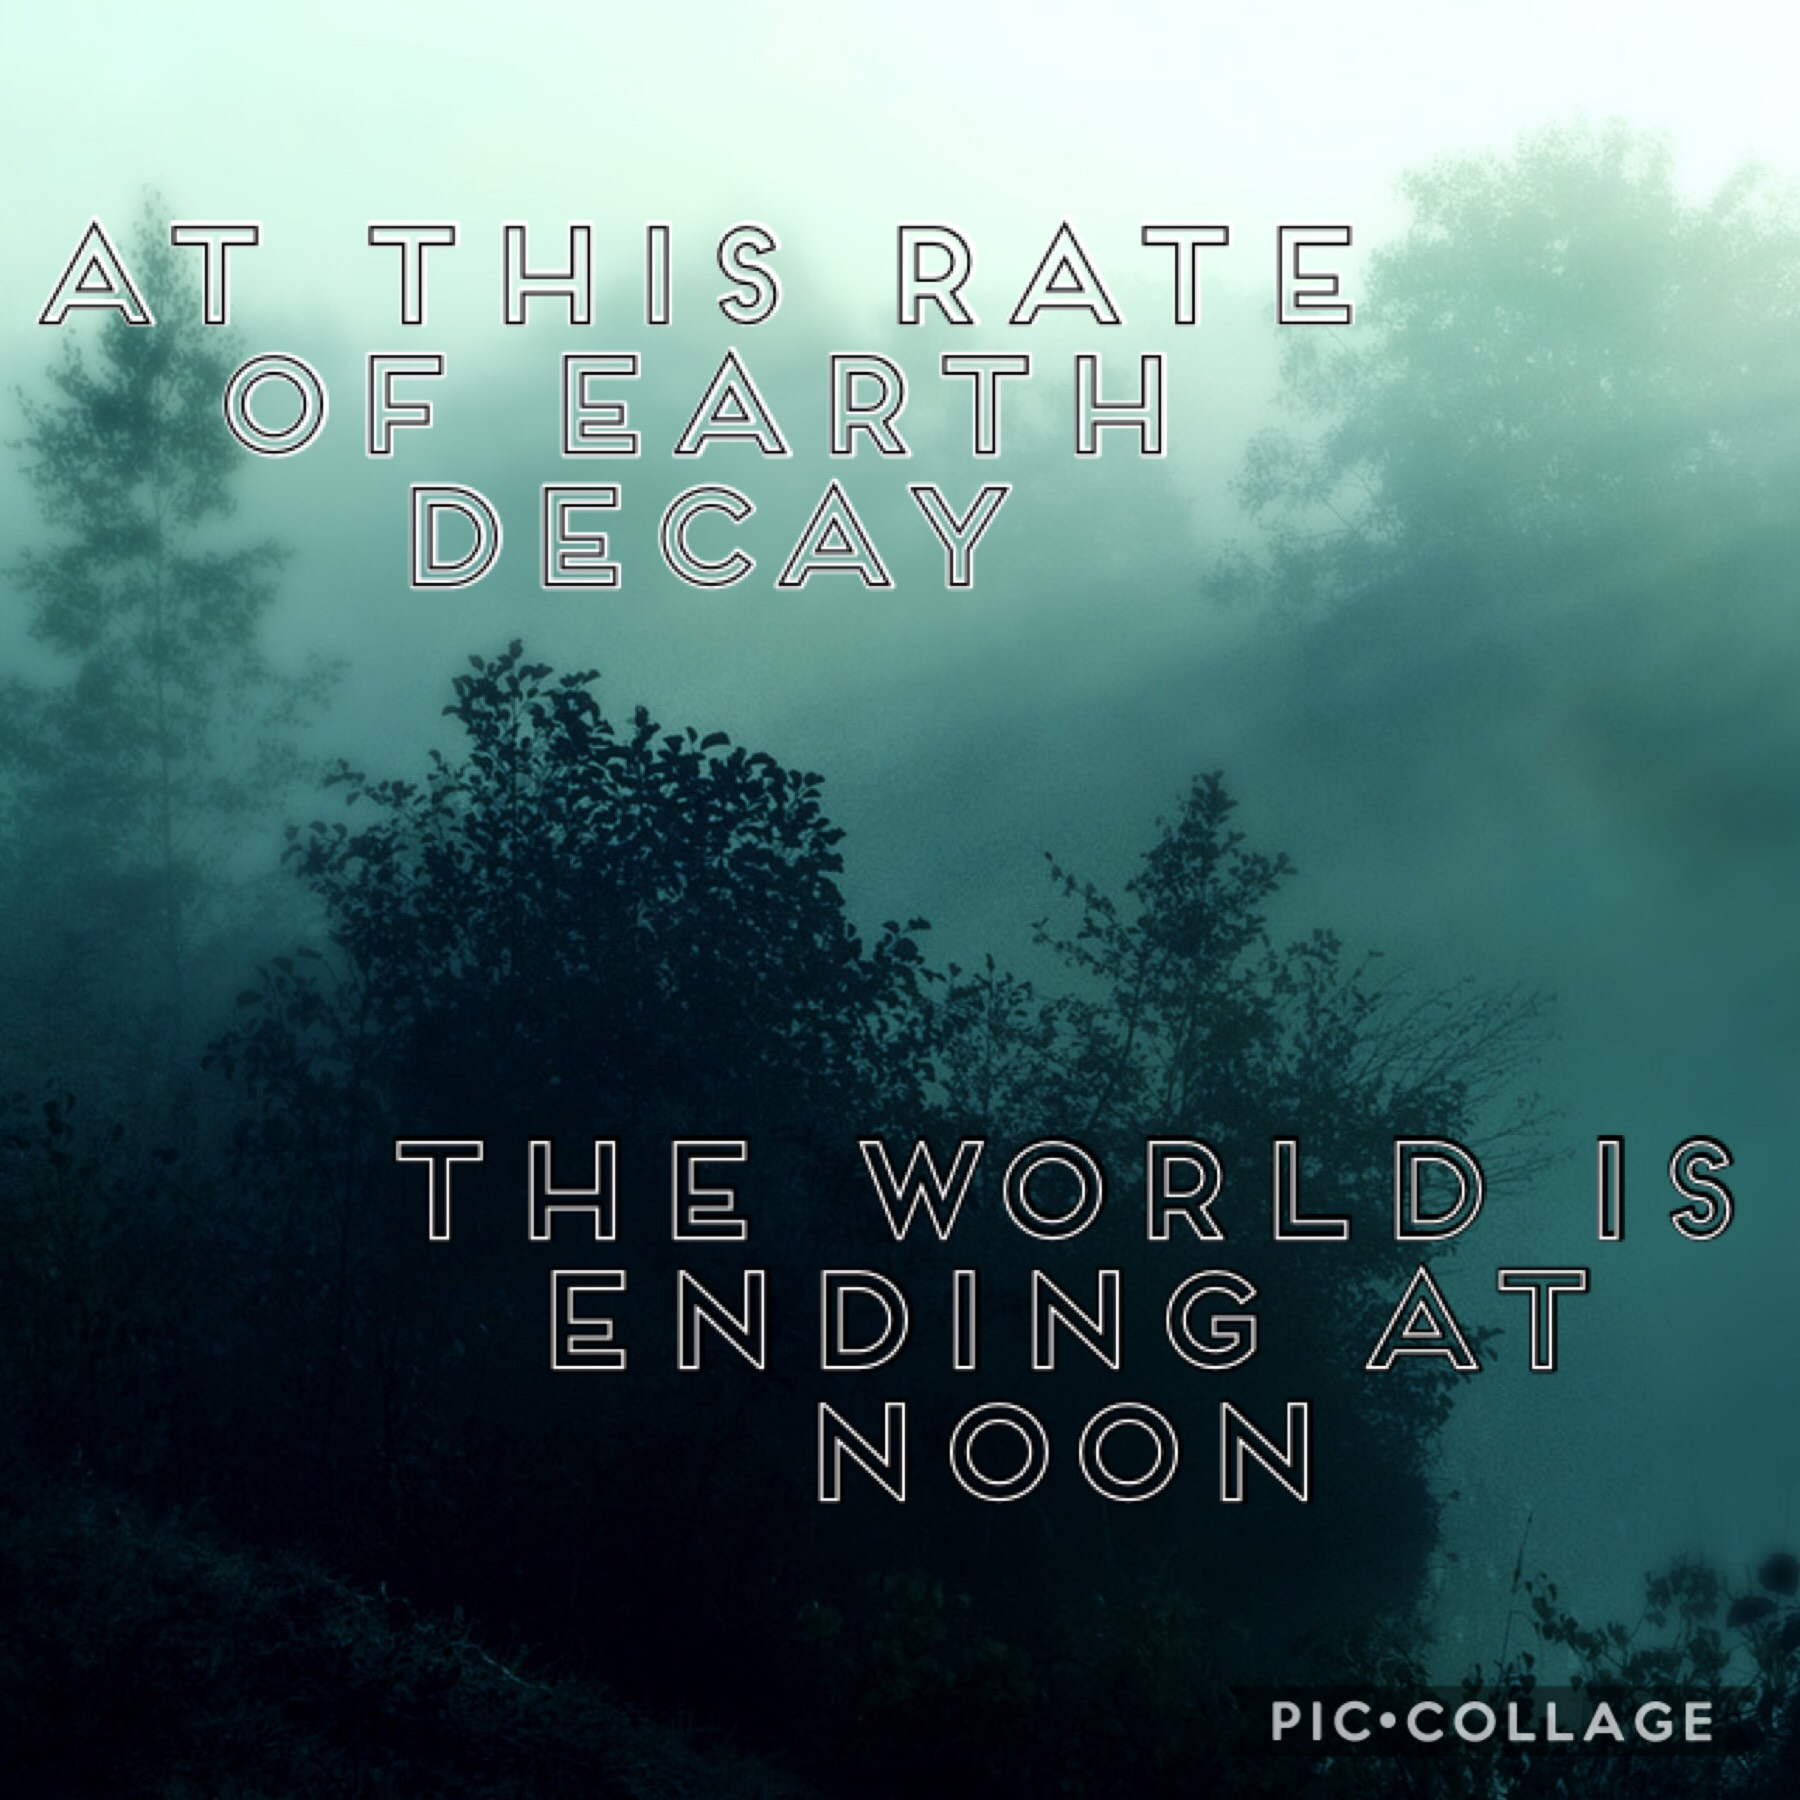 """""""At this rate of earth decay the world is ending at noon"""" -conan grey"""